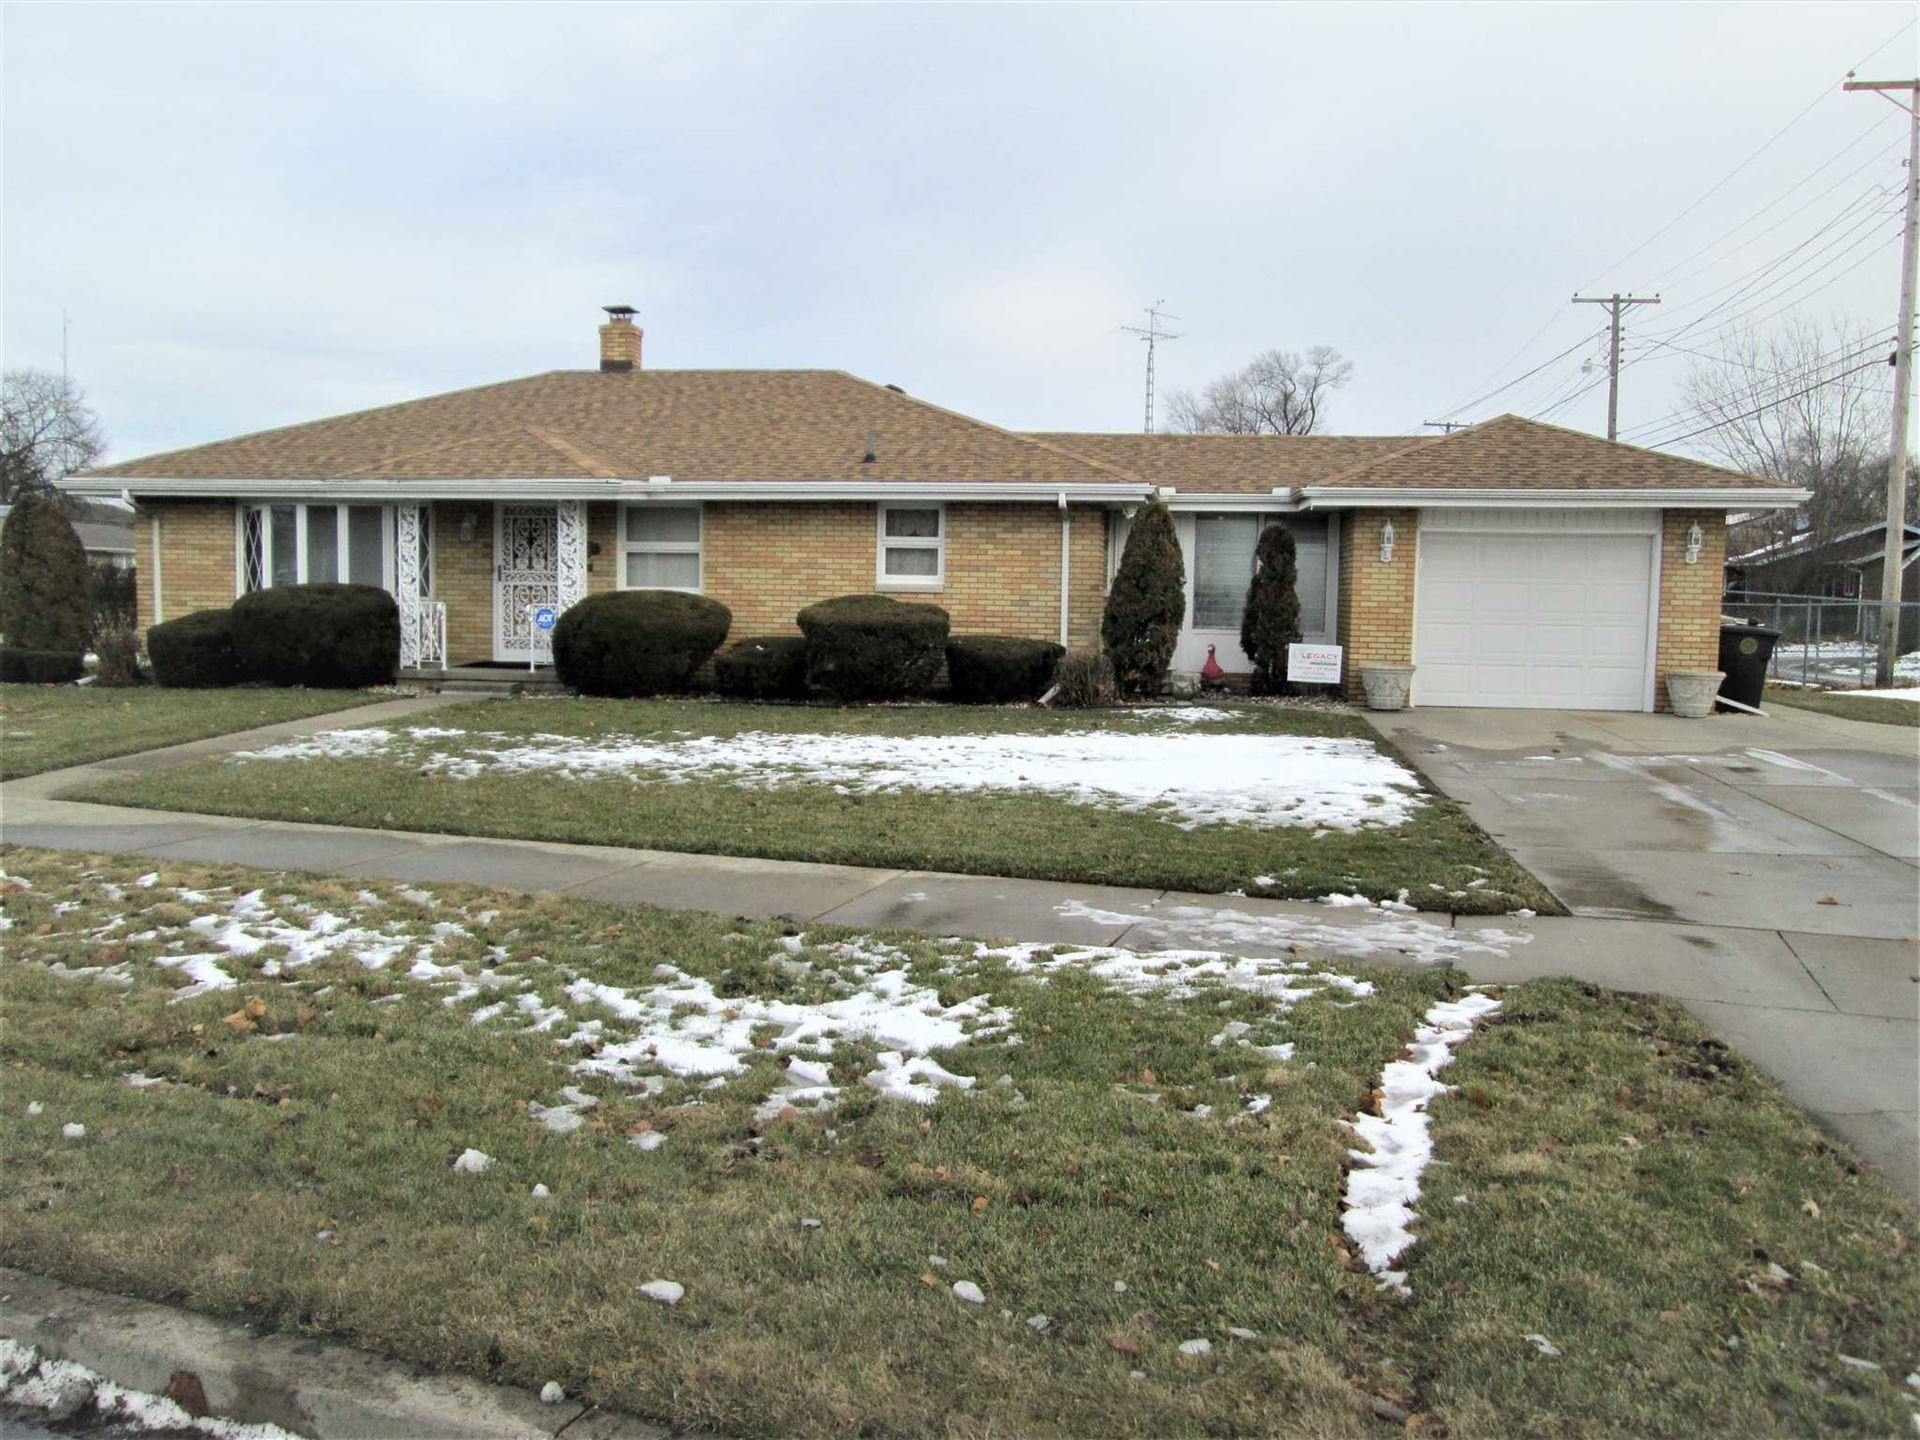 506 S Lombardy Drive, South Bend, IN 46619 - #: 202000213